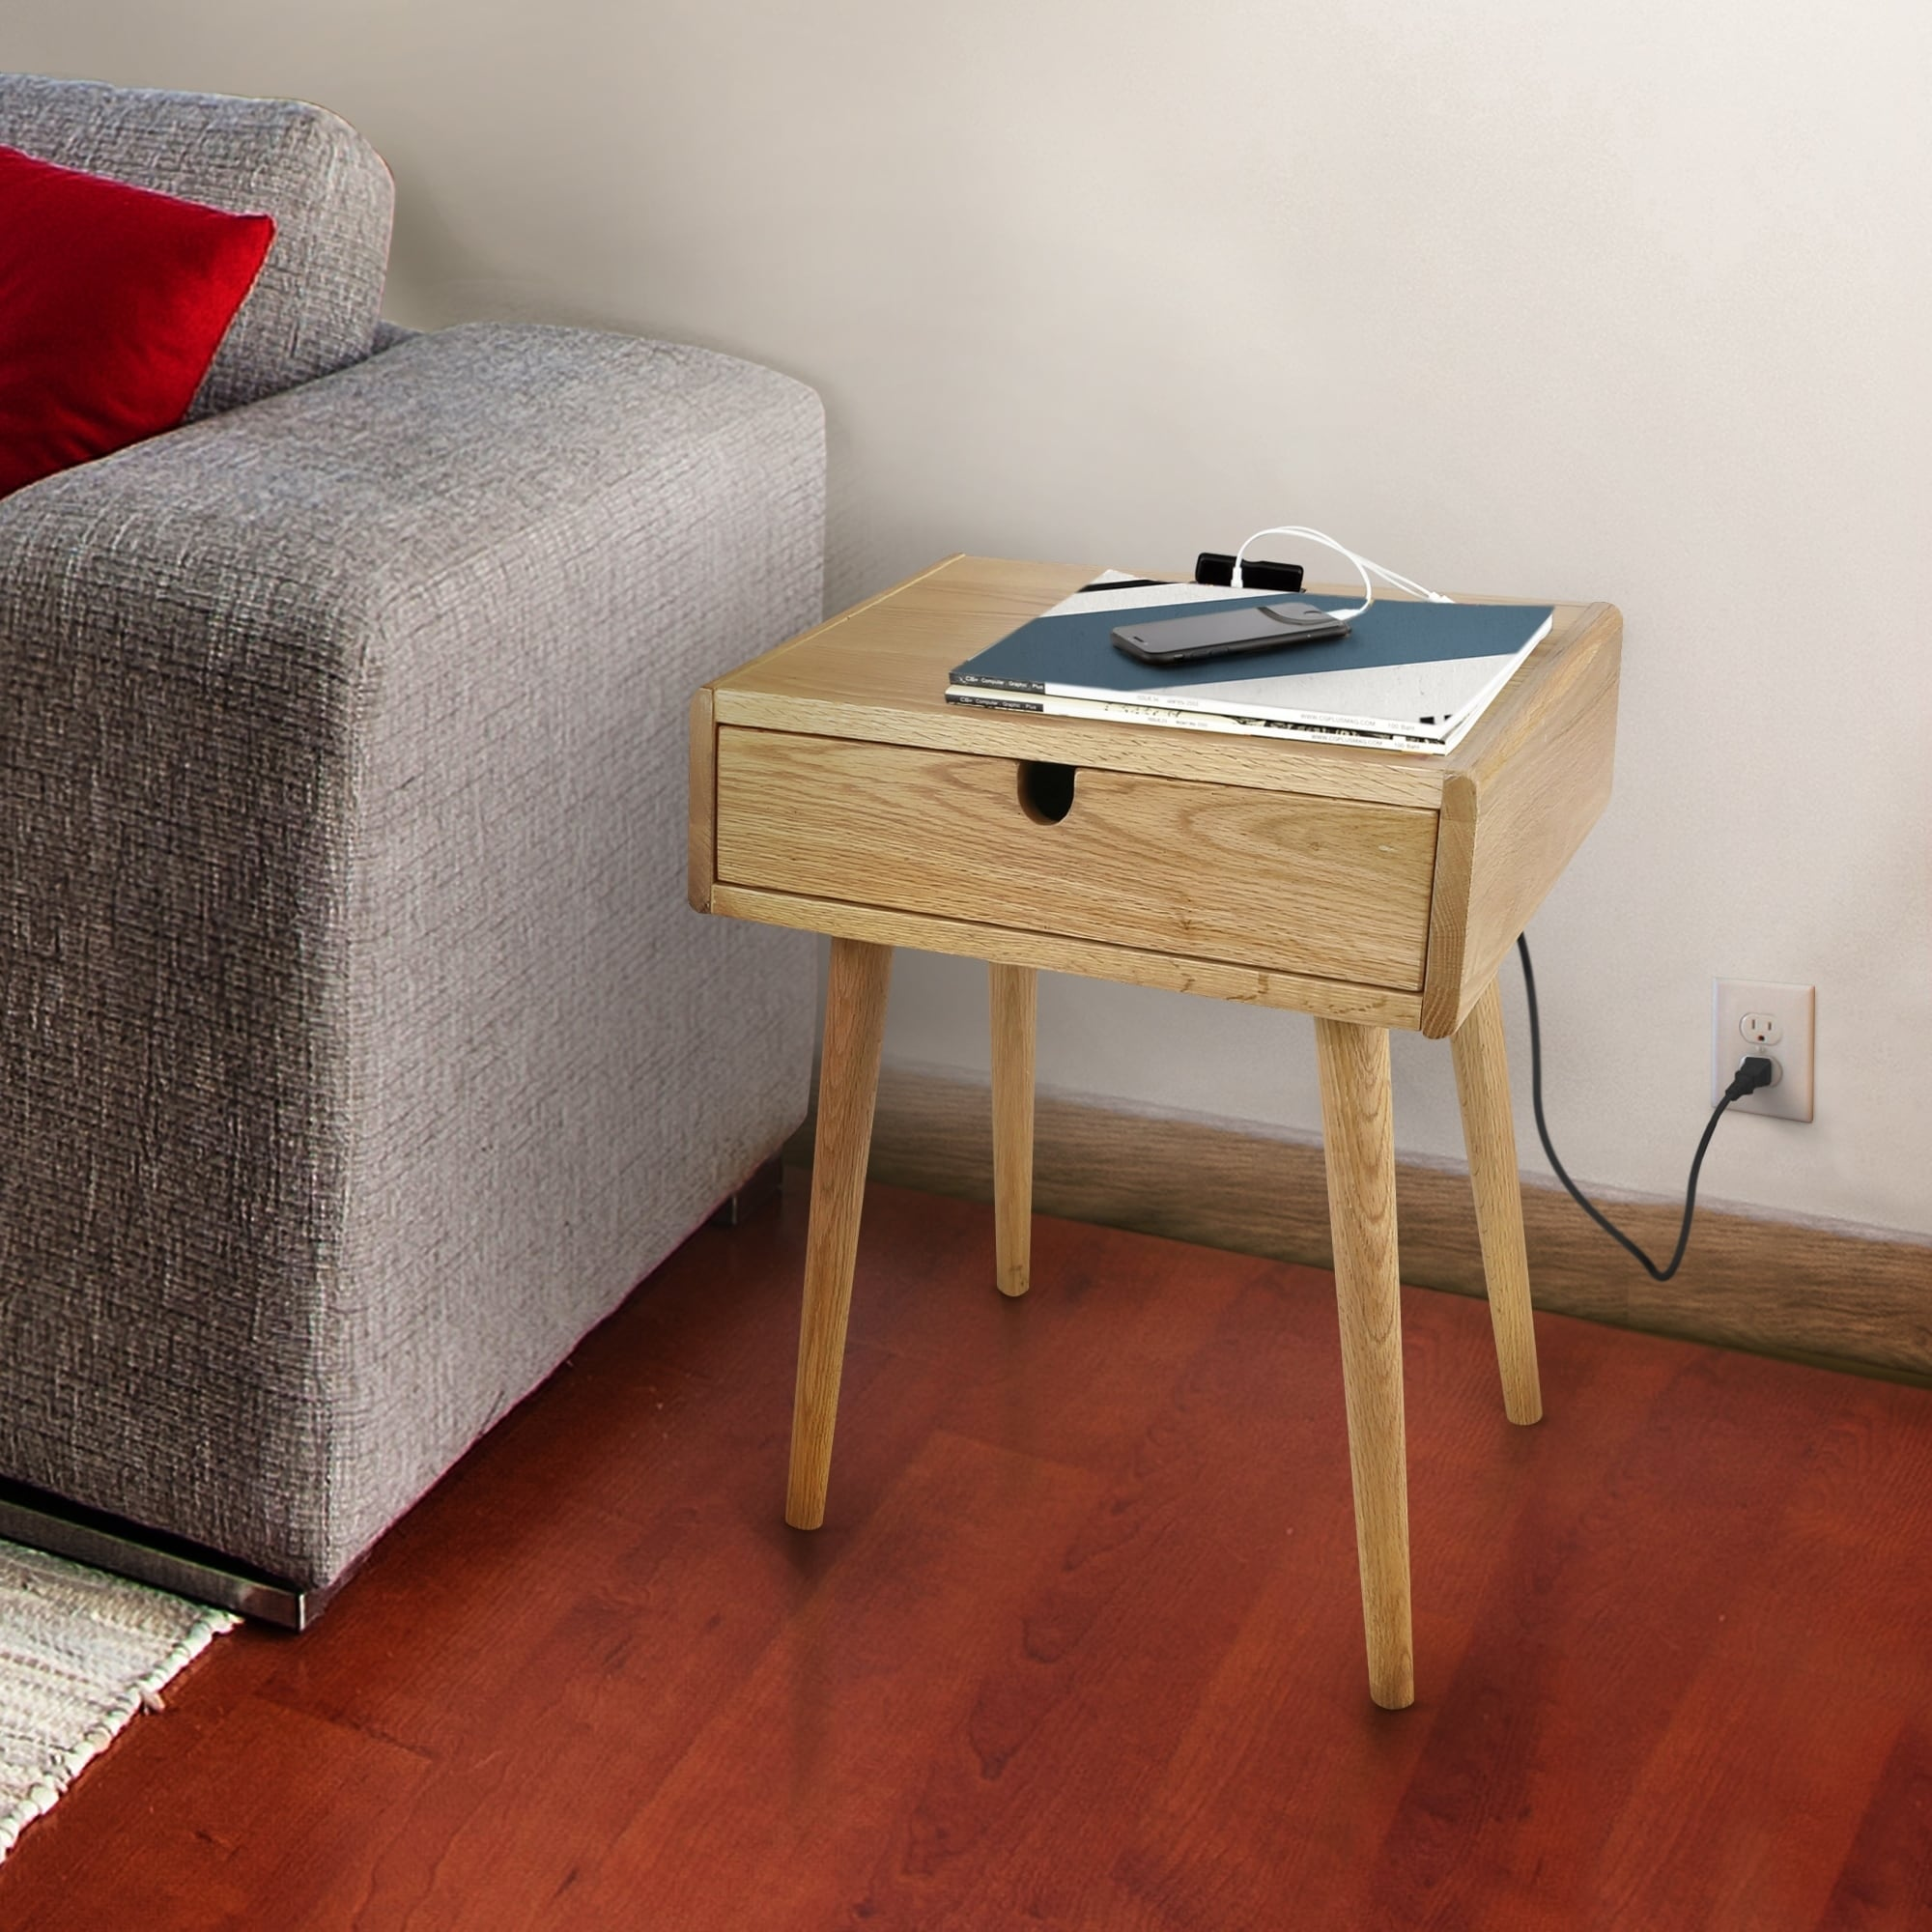 Freedom Furniture Lounges Freedom Nightstand End Table With Usb Ports Made Of Solid American Oak